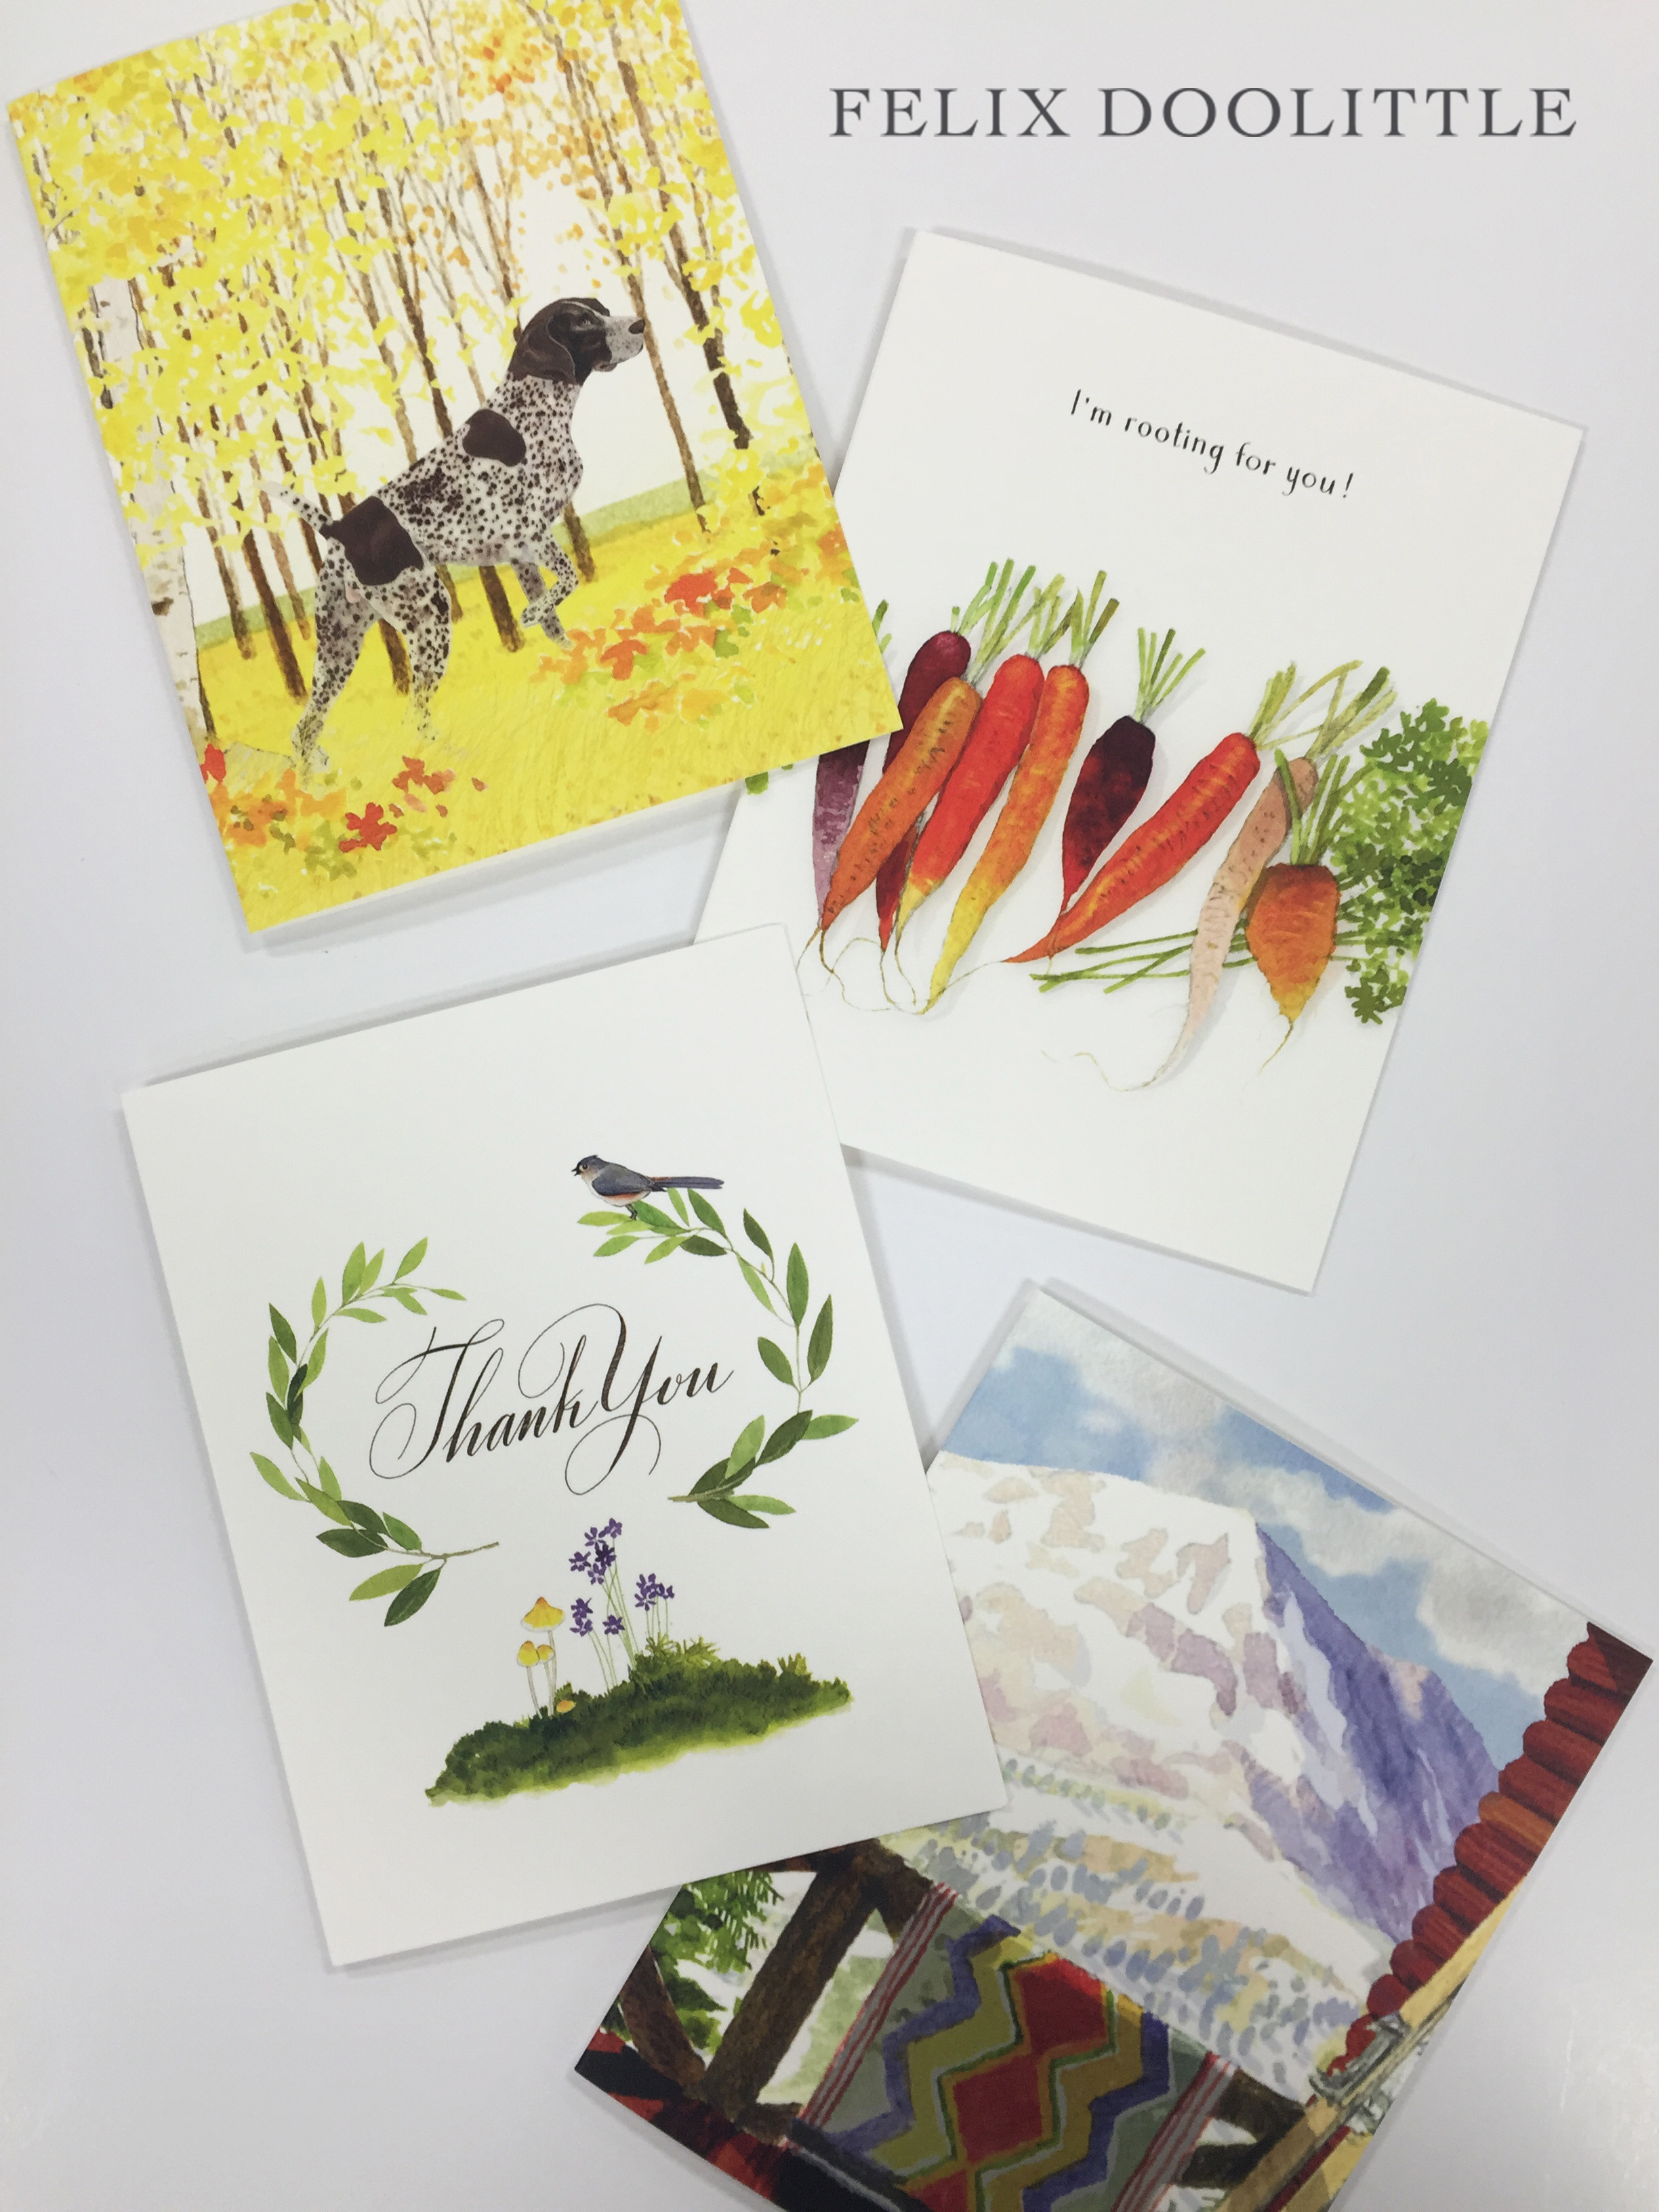 #whatsonpress Felix Doolittle Occasion Cards TPI Solutions Ink